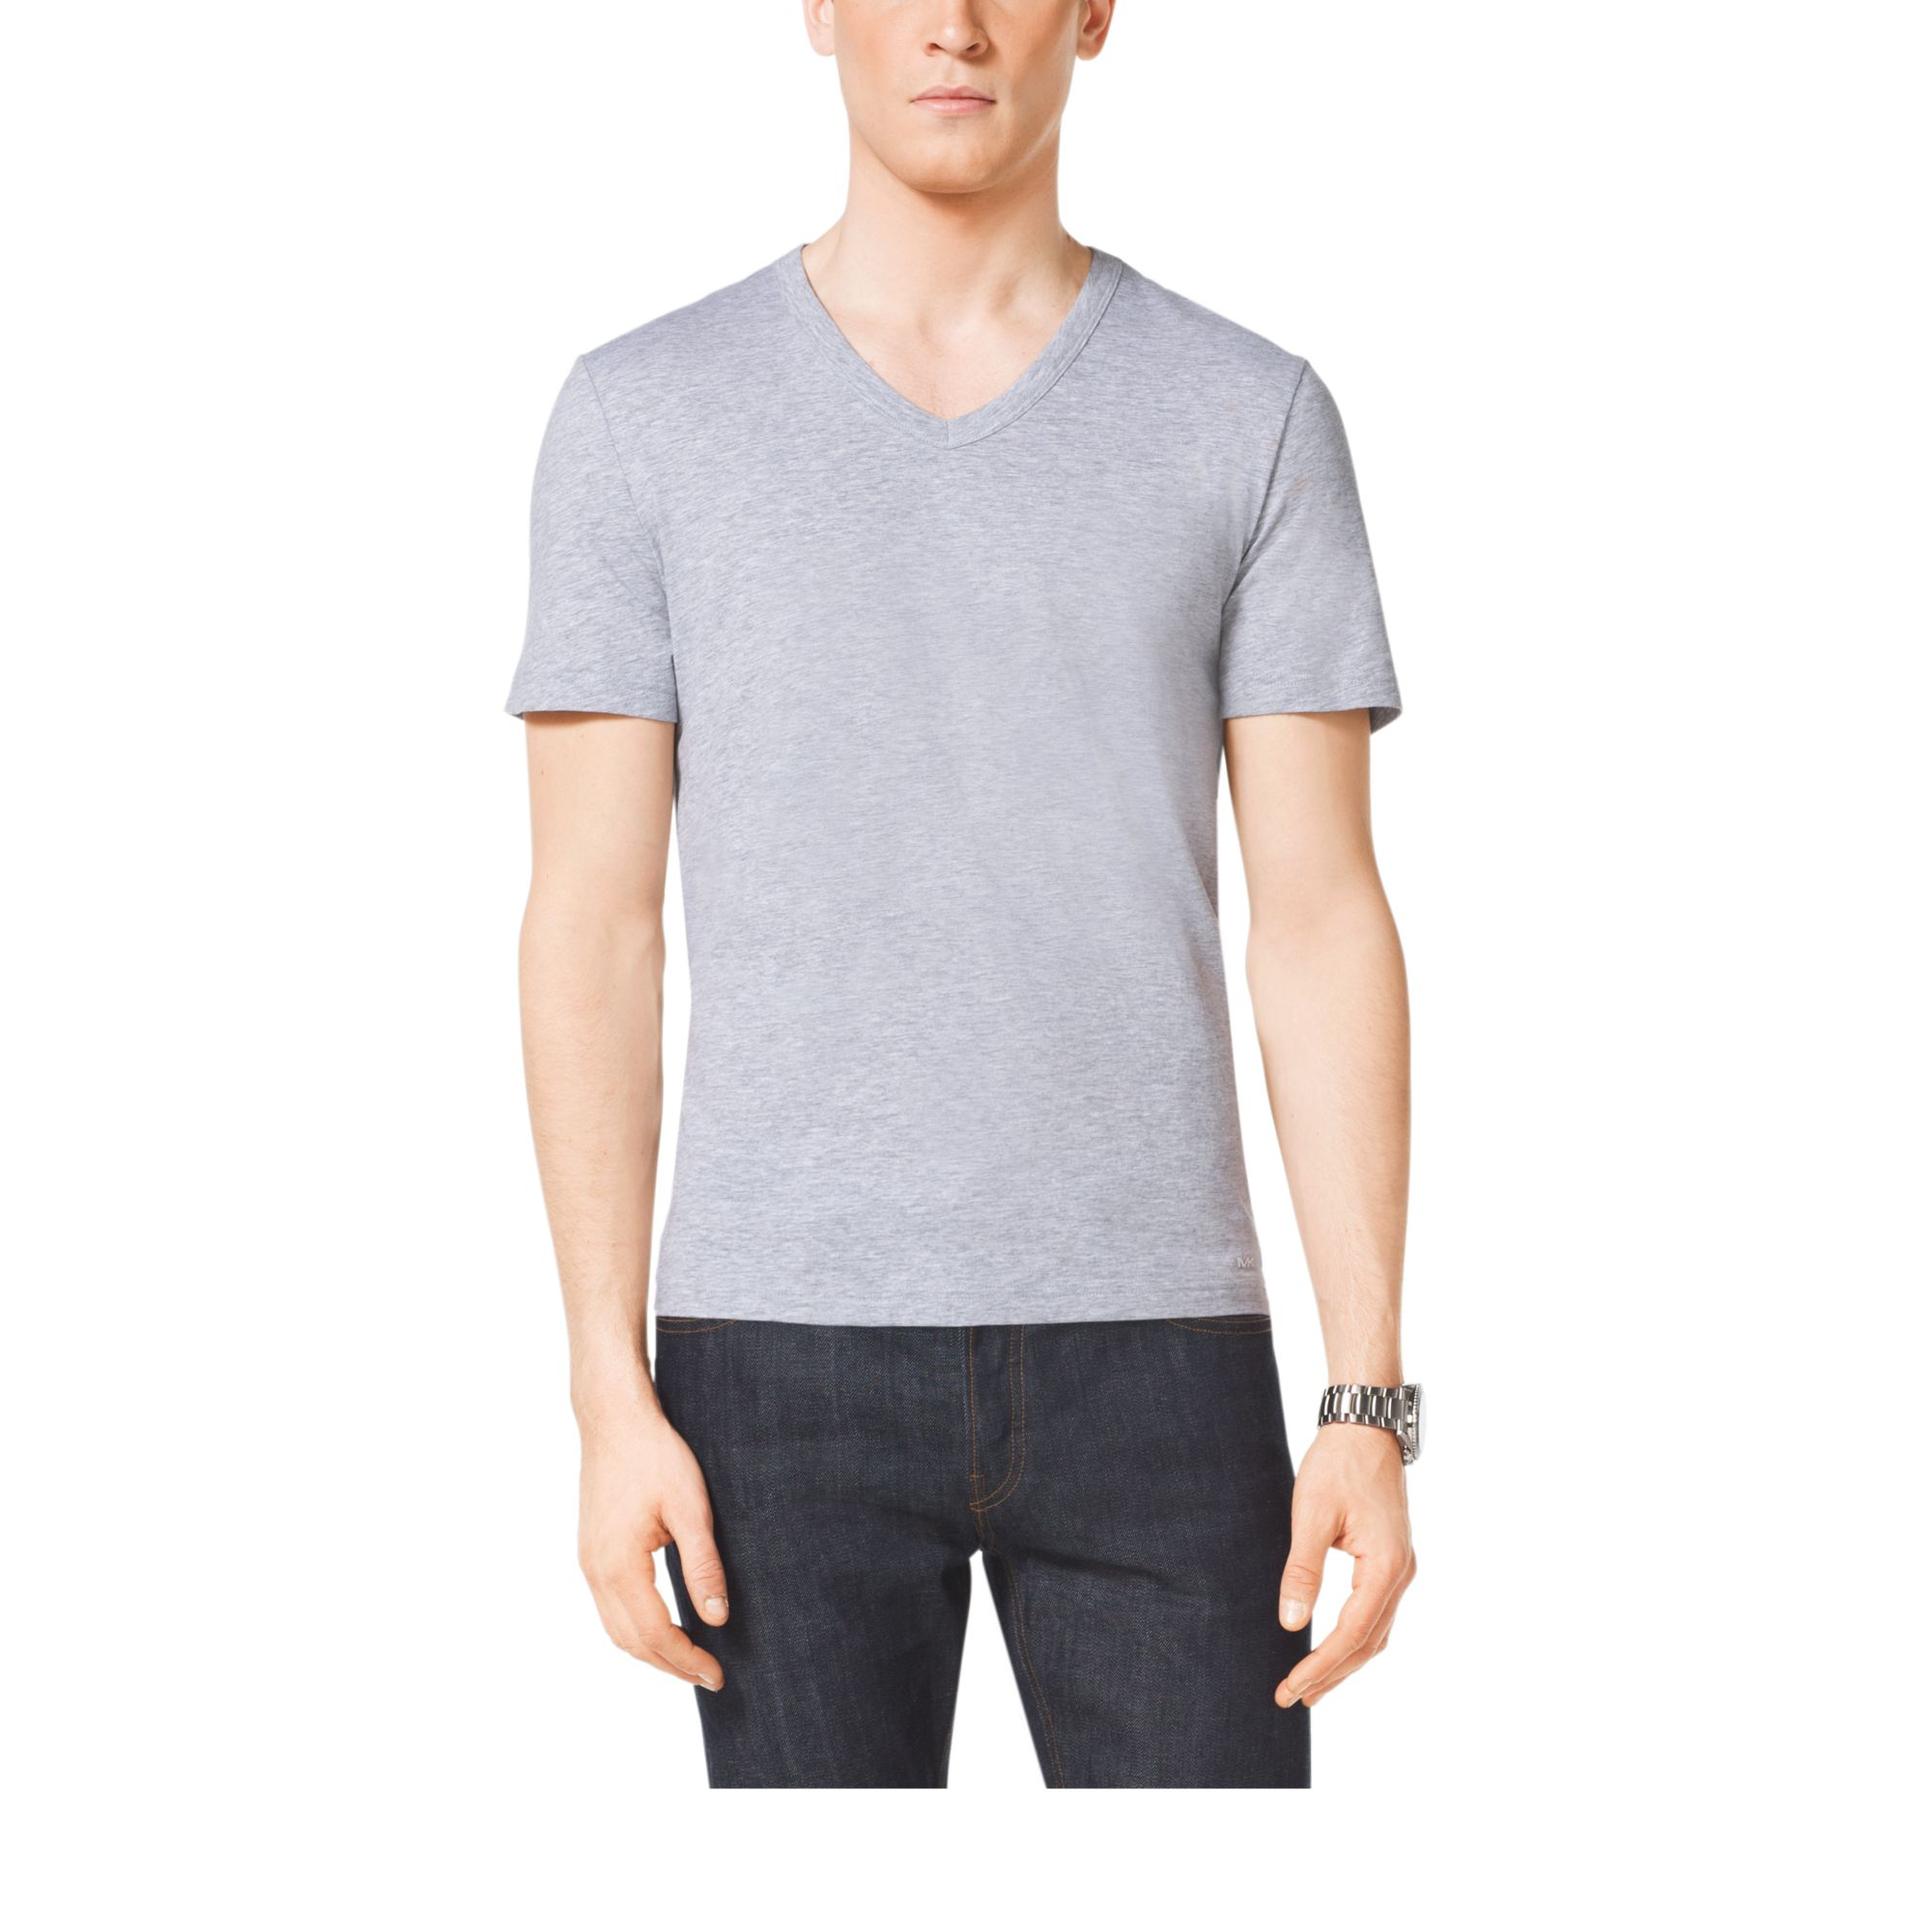 Michael kors v neck cotton t shirt in gray heather grey for Michael stars t shirts on sale